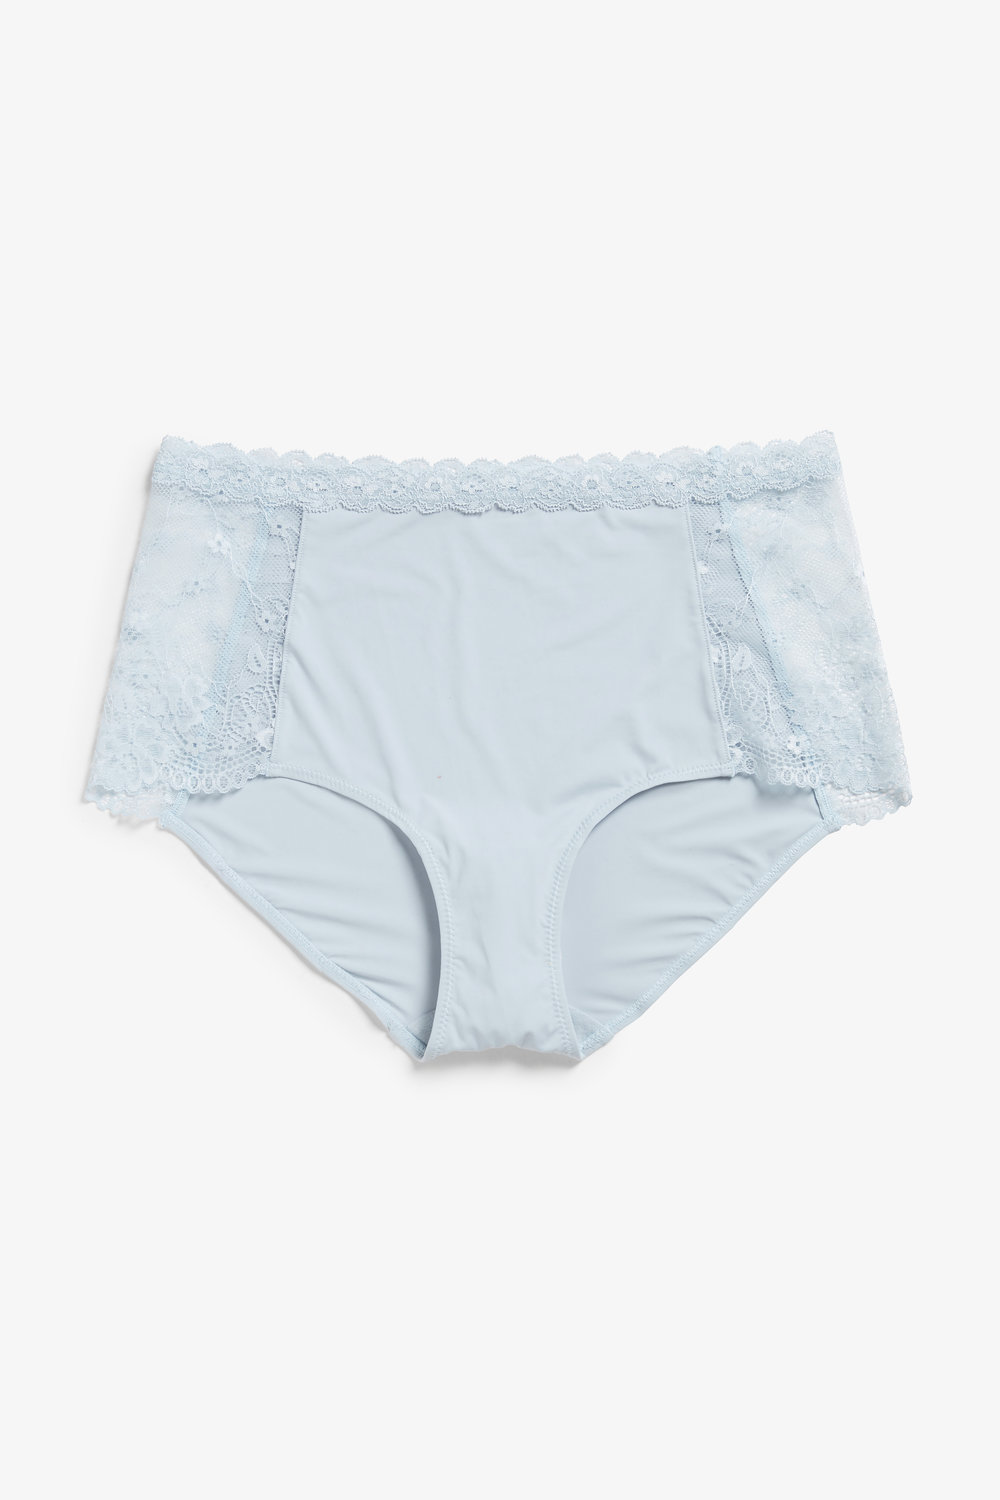 Jane highwaist pale blue.jpg